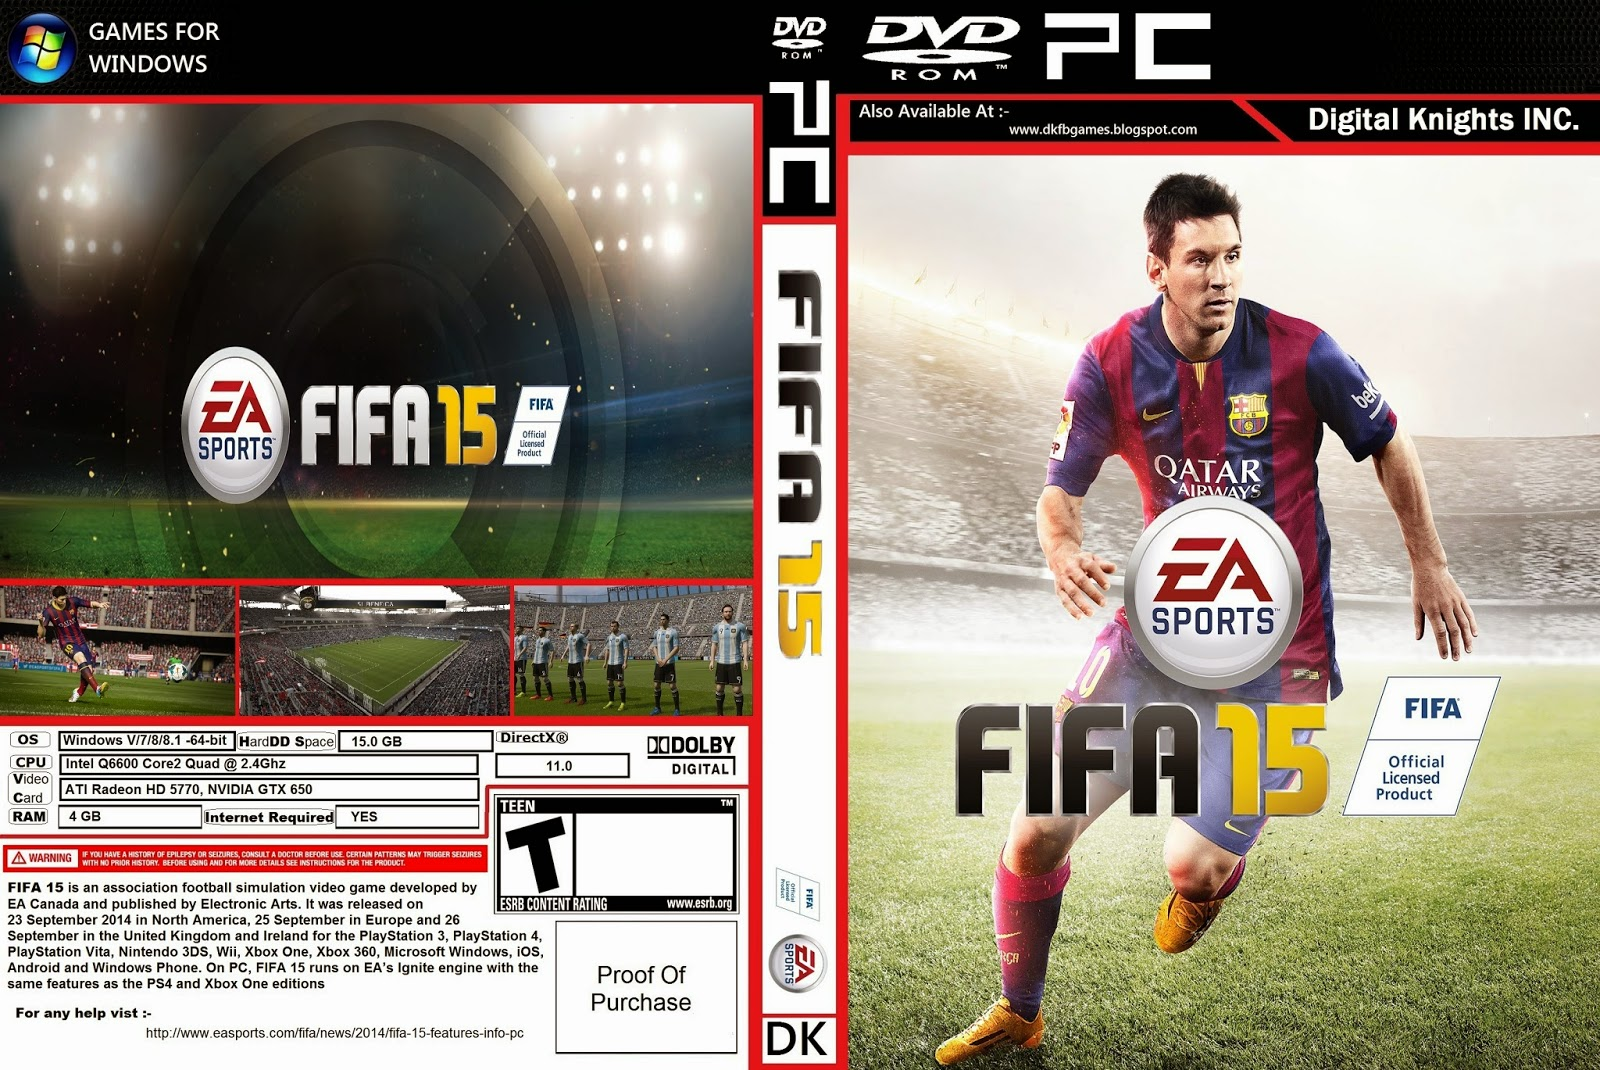 Digital Knights, Inc.: FIFA 15 (PC) Download free Torrent file.